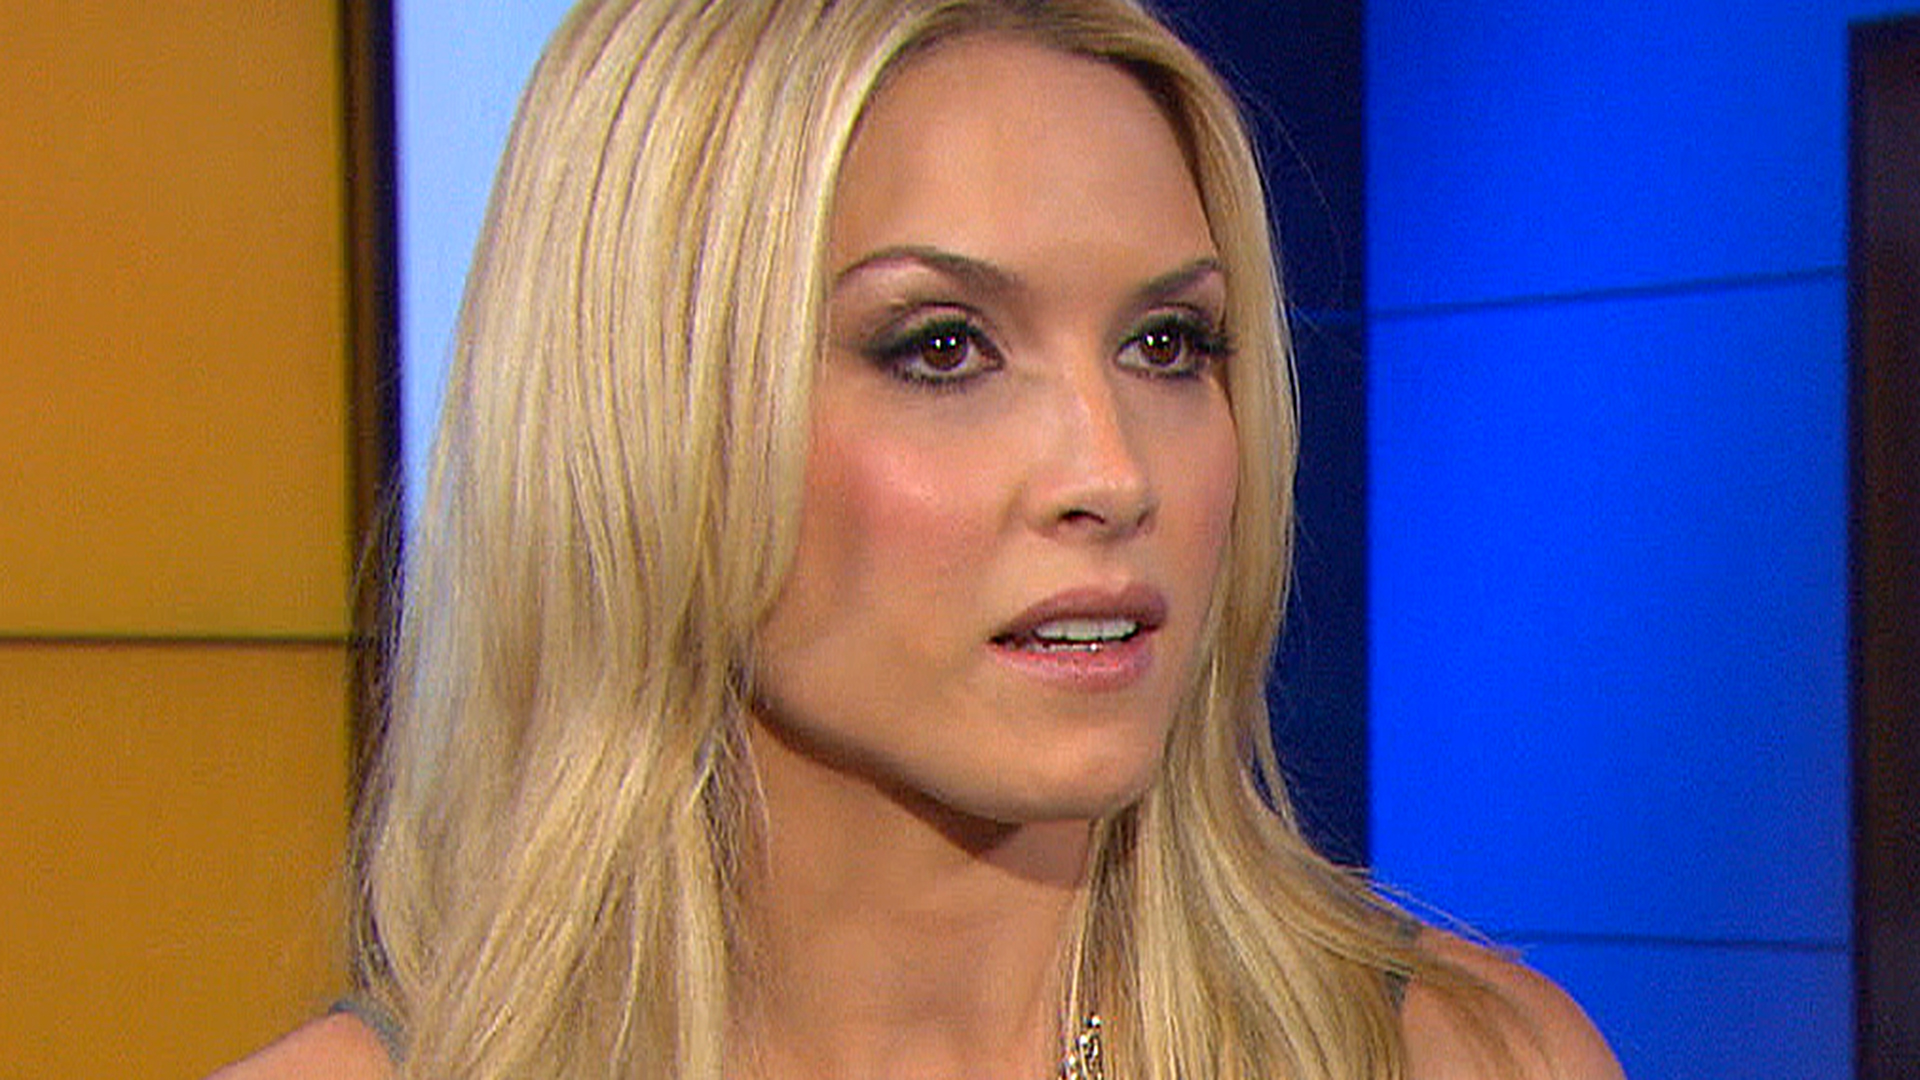 Controversial former Miss USA speaks out - TODAY.com